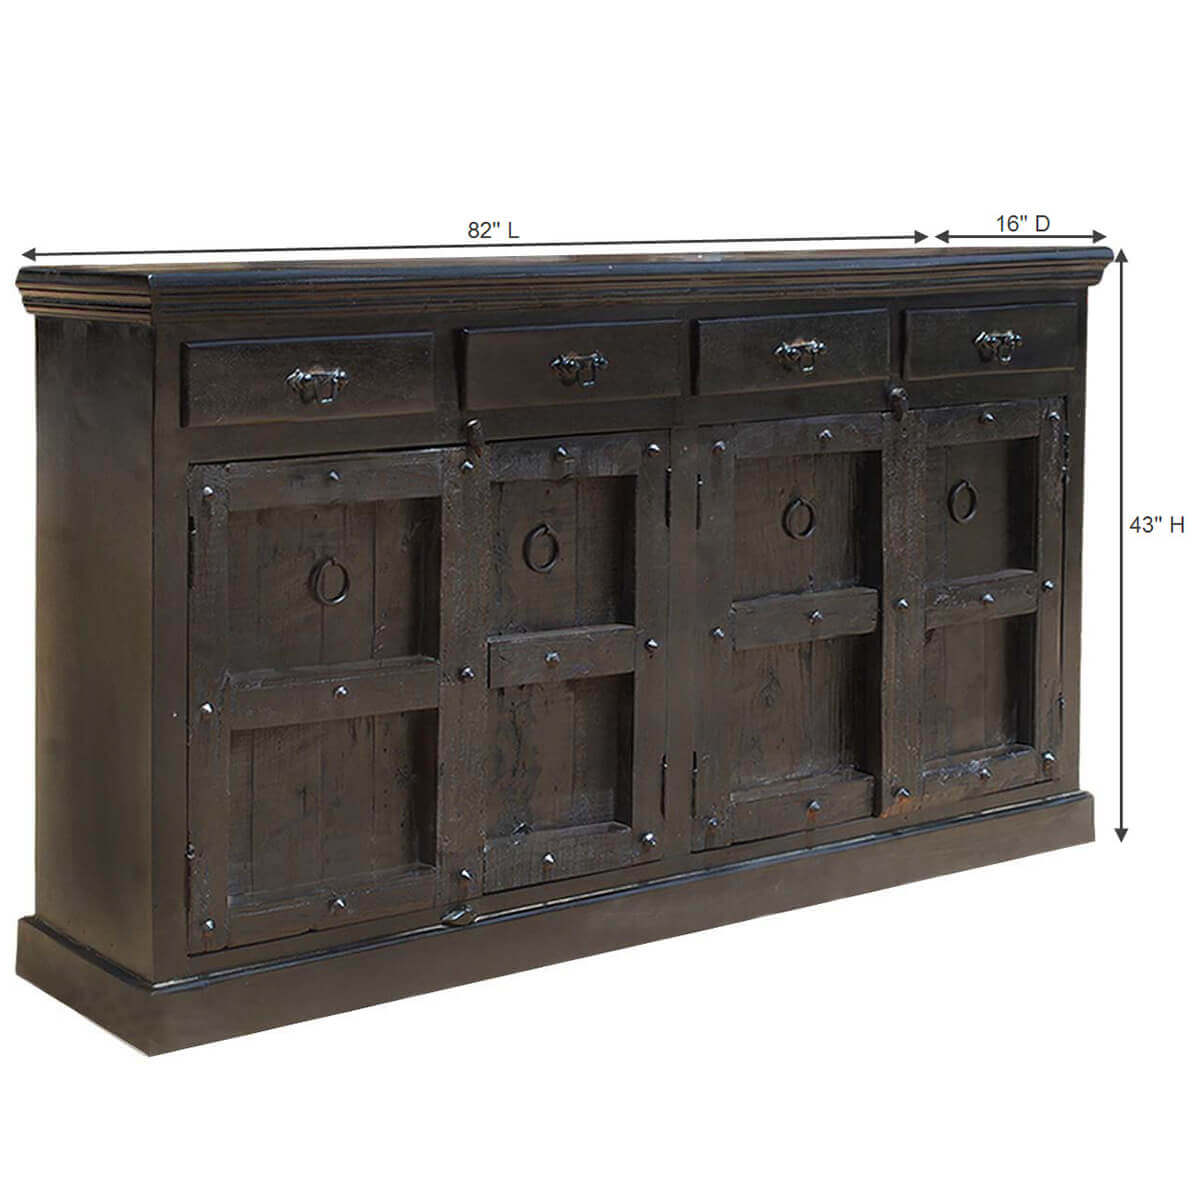 Kansas city solid wood 4 drawer black sideboard for Affordable furniture kansas city